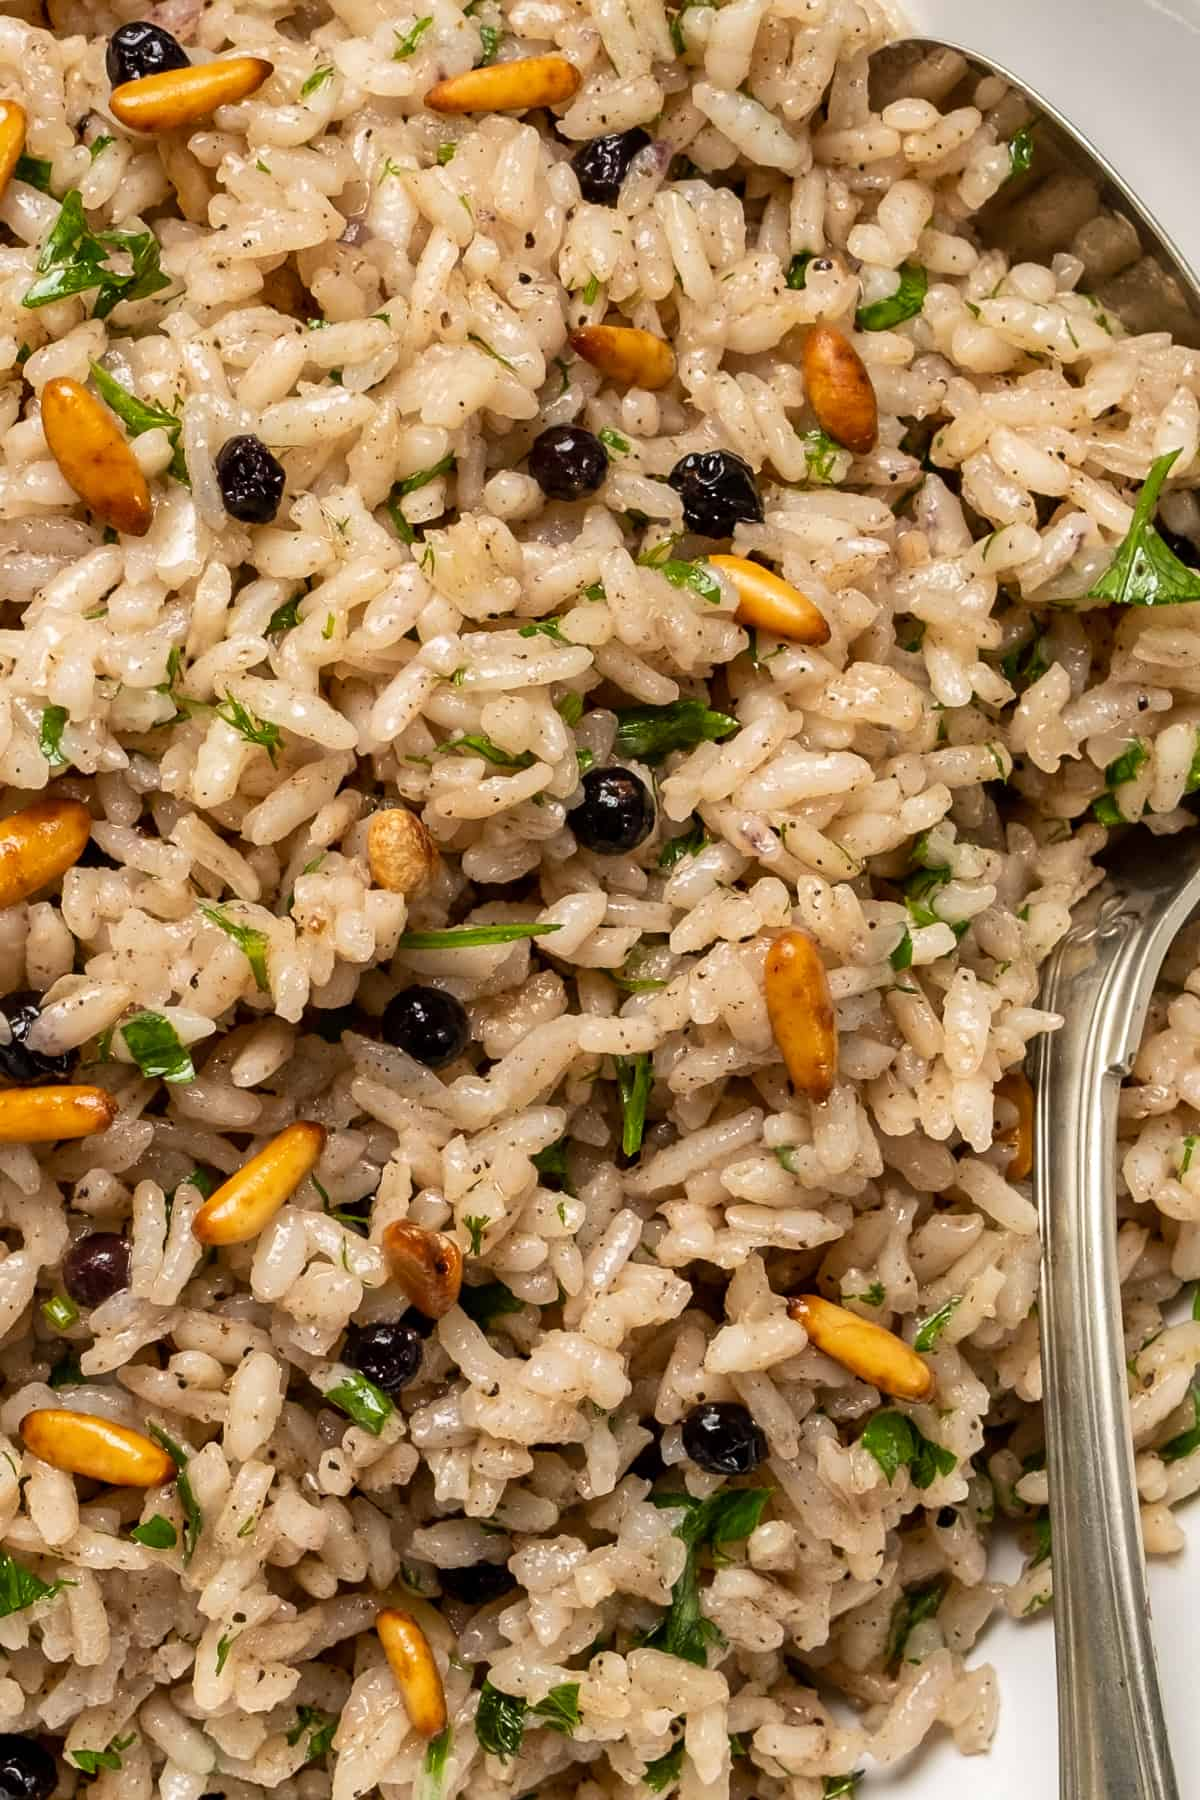 Allspice rice pilaf with raisins, pine nuts and parsley and a spoon in it.